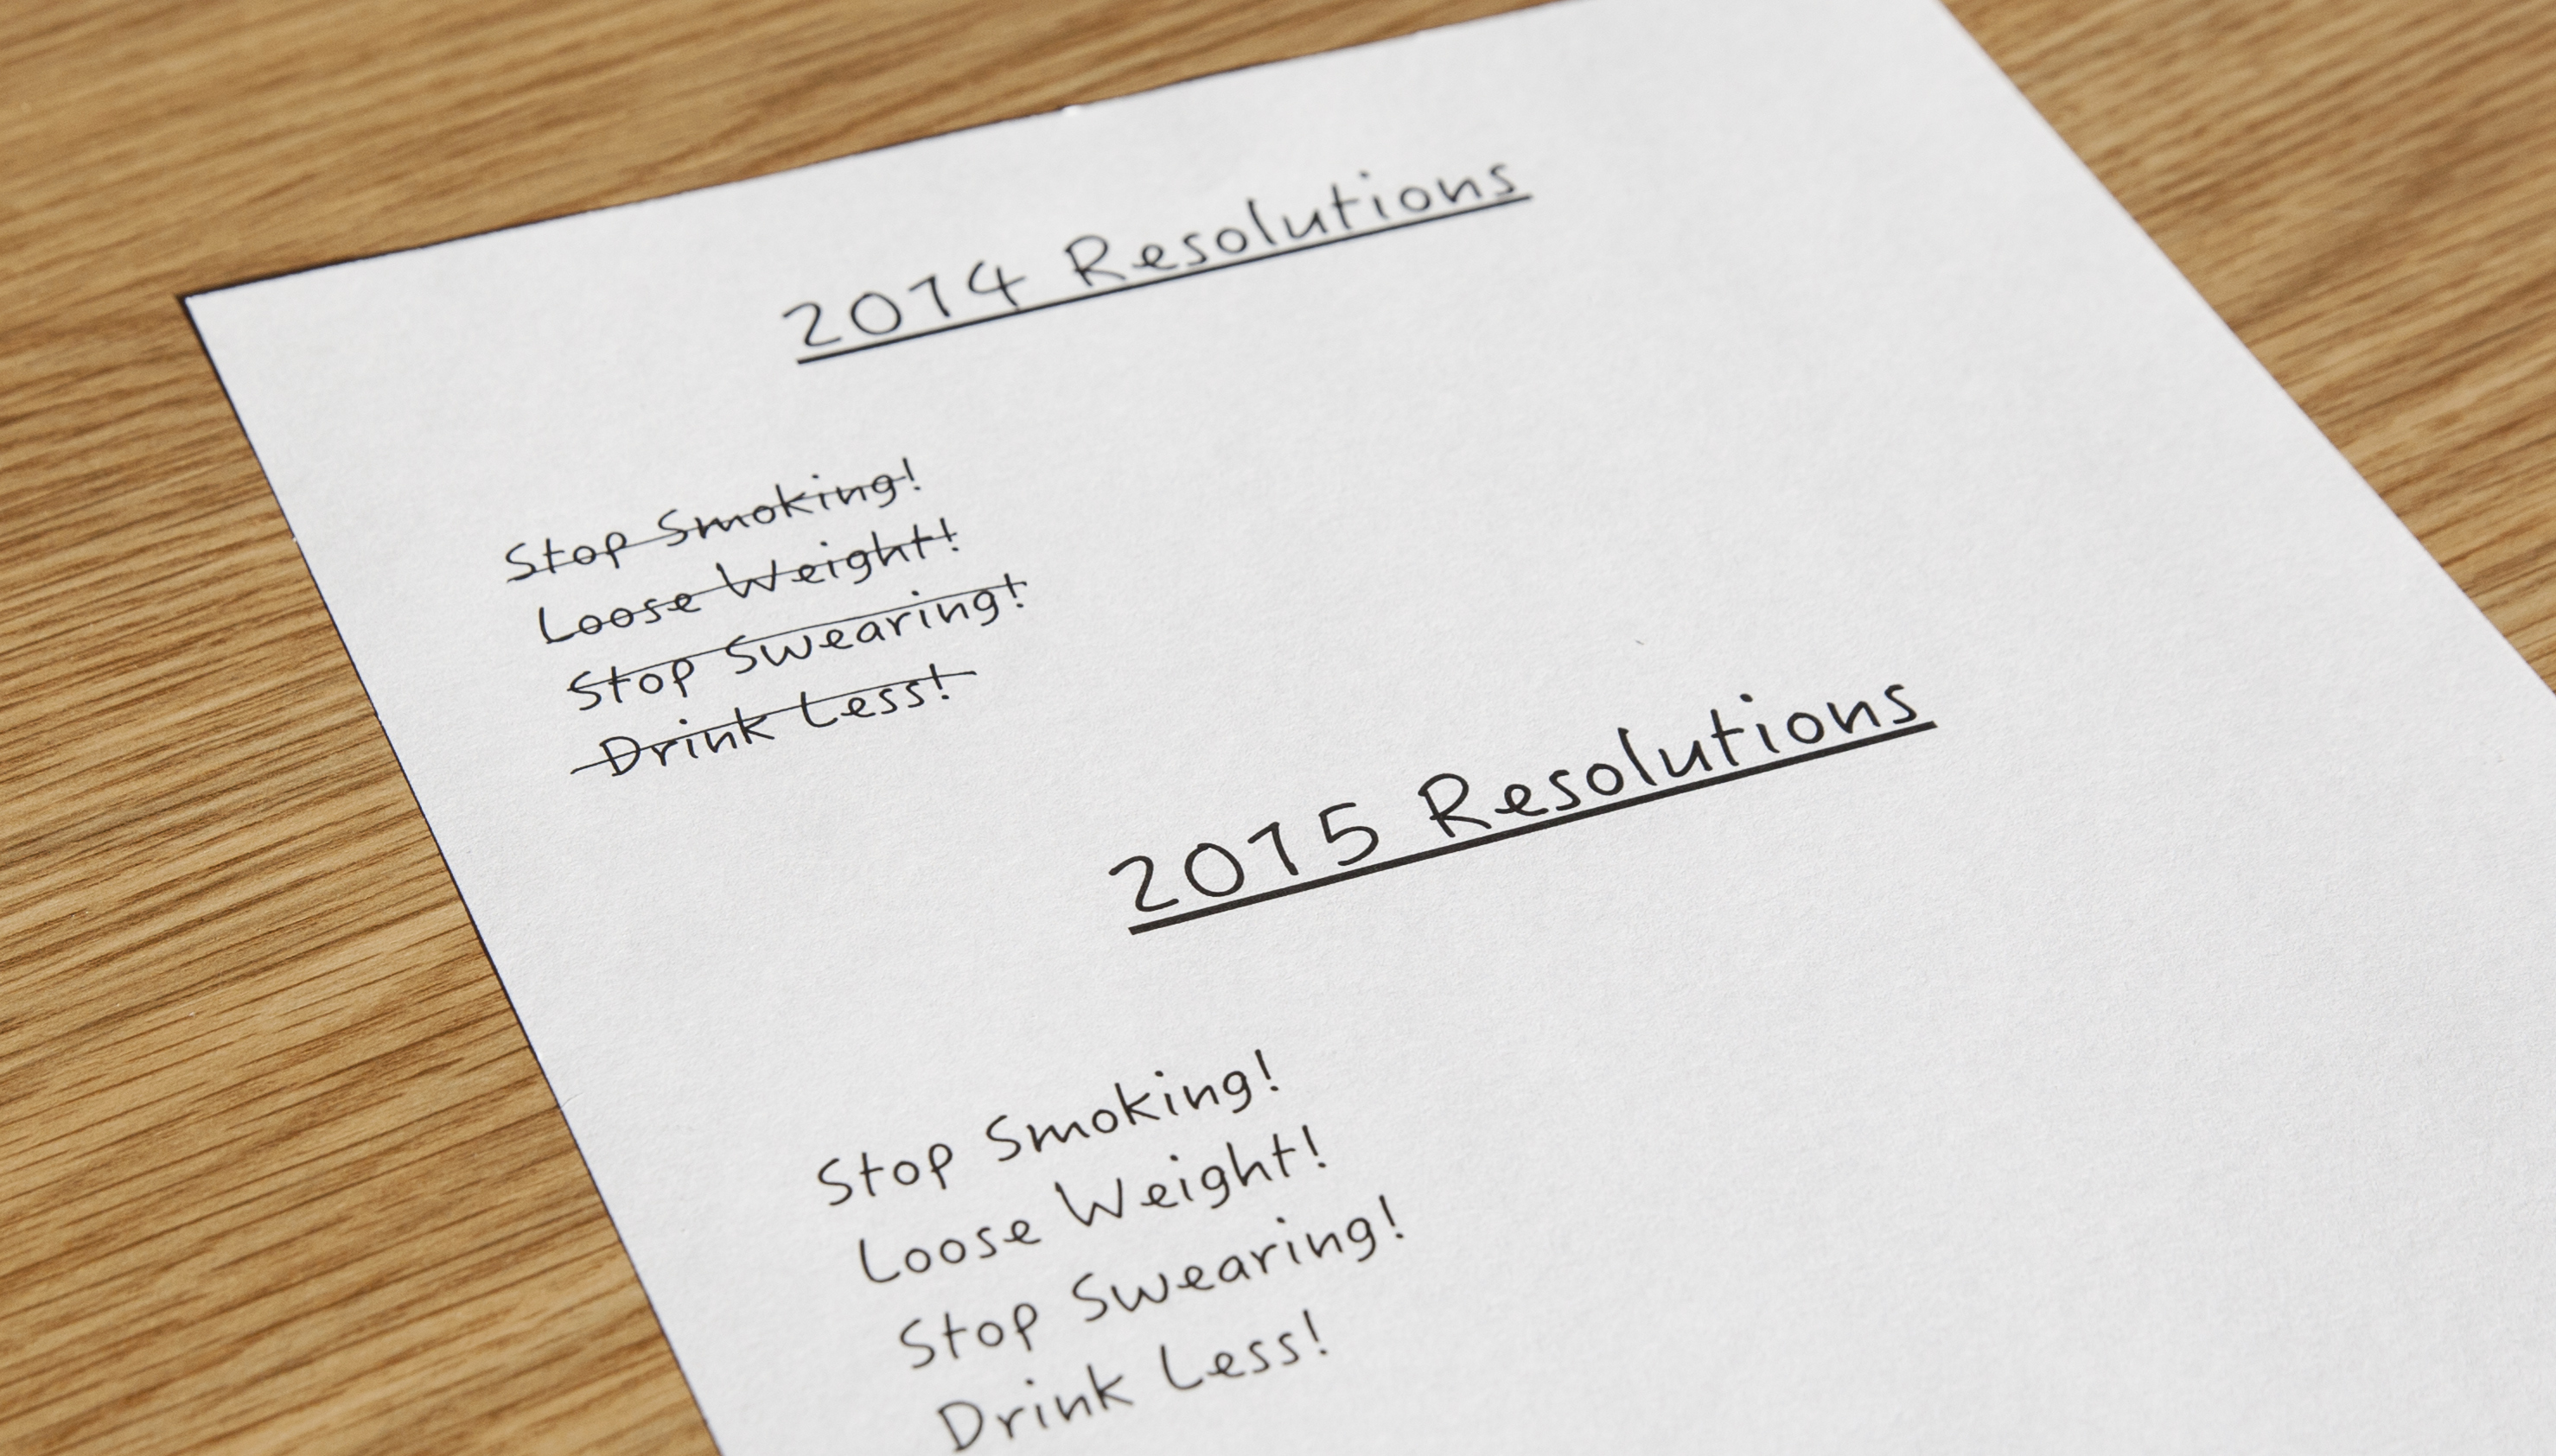 Opinions_new years resolutions